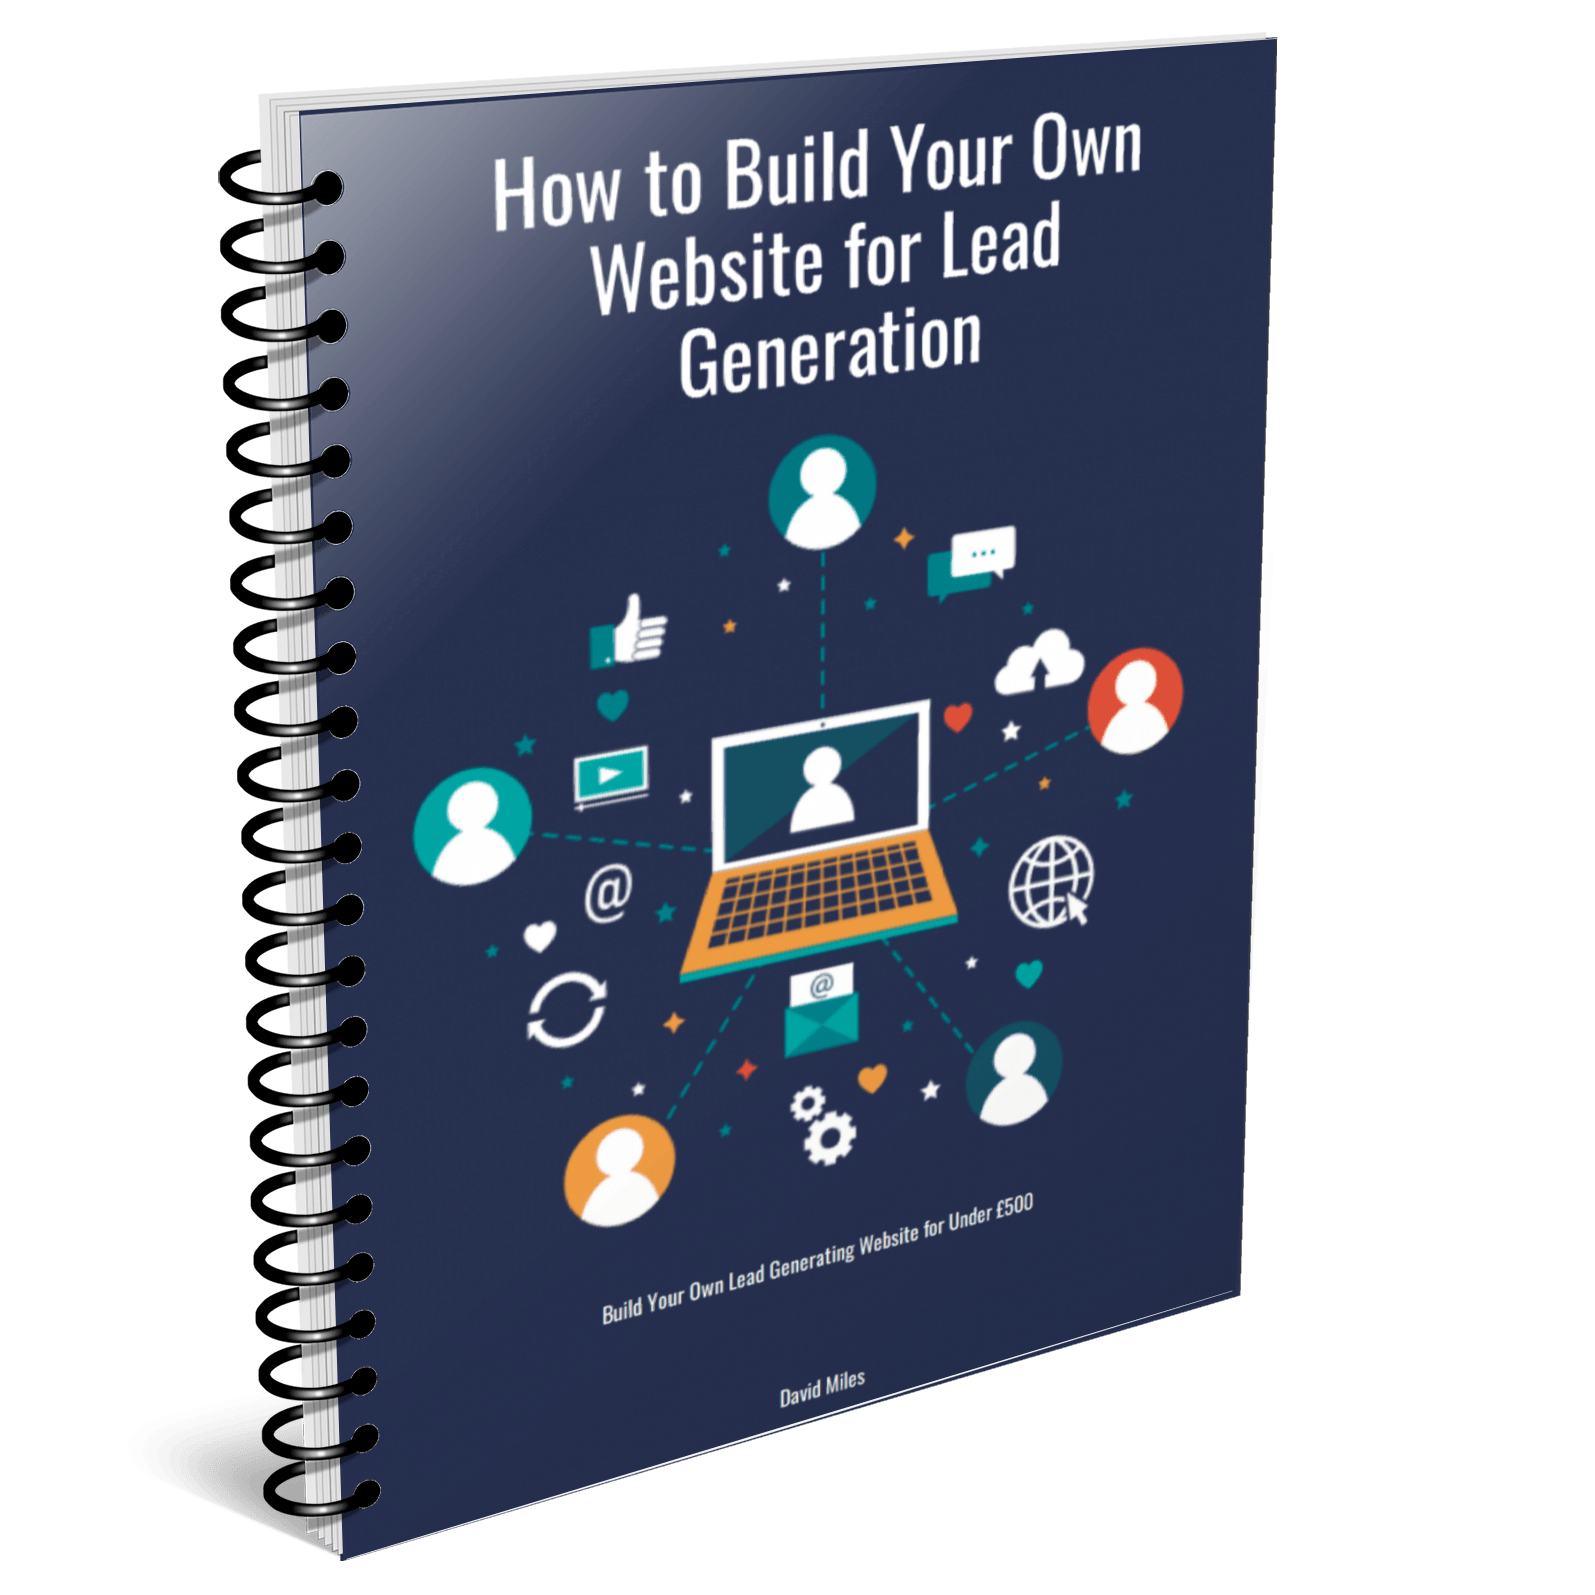 How to Build Your Own Website for Lead Generation - Free eBook